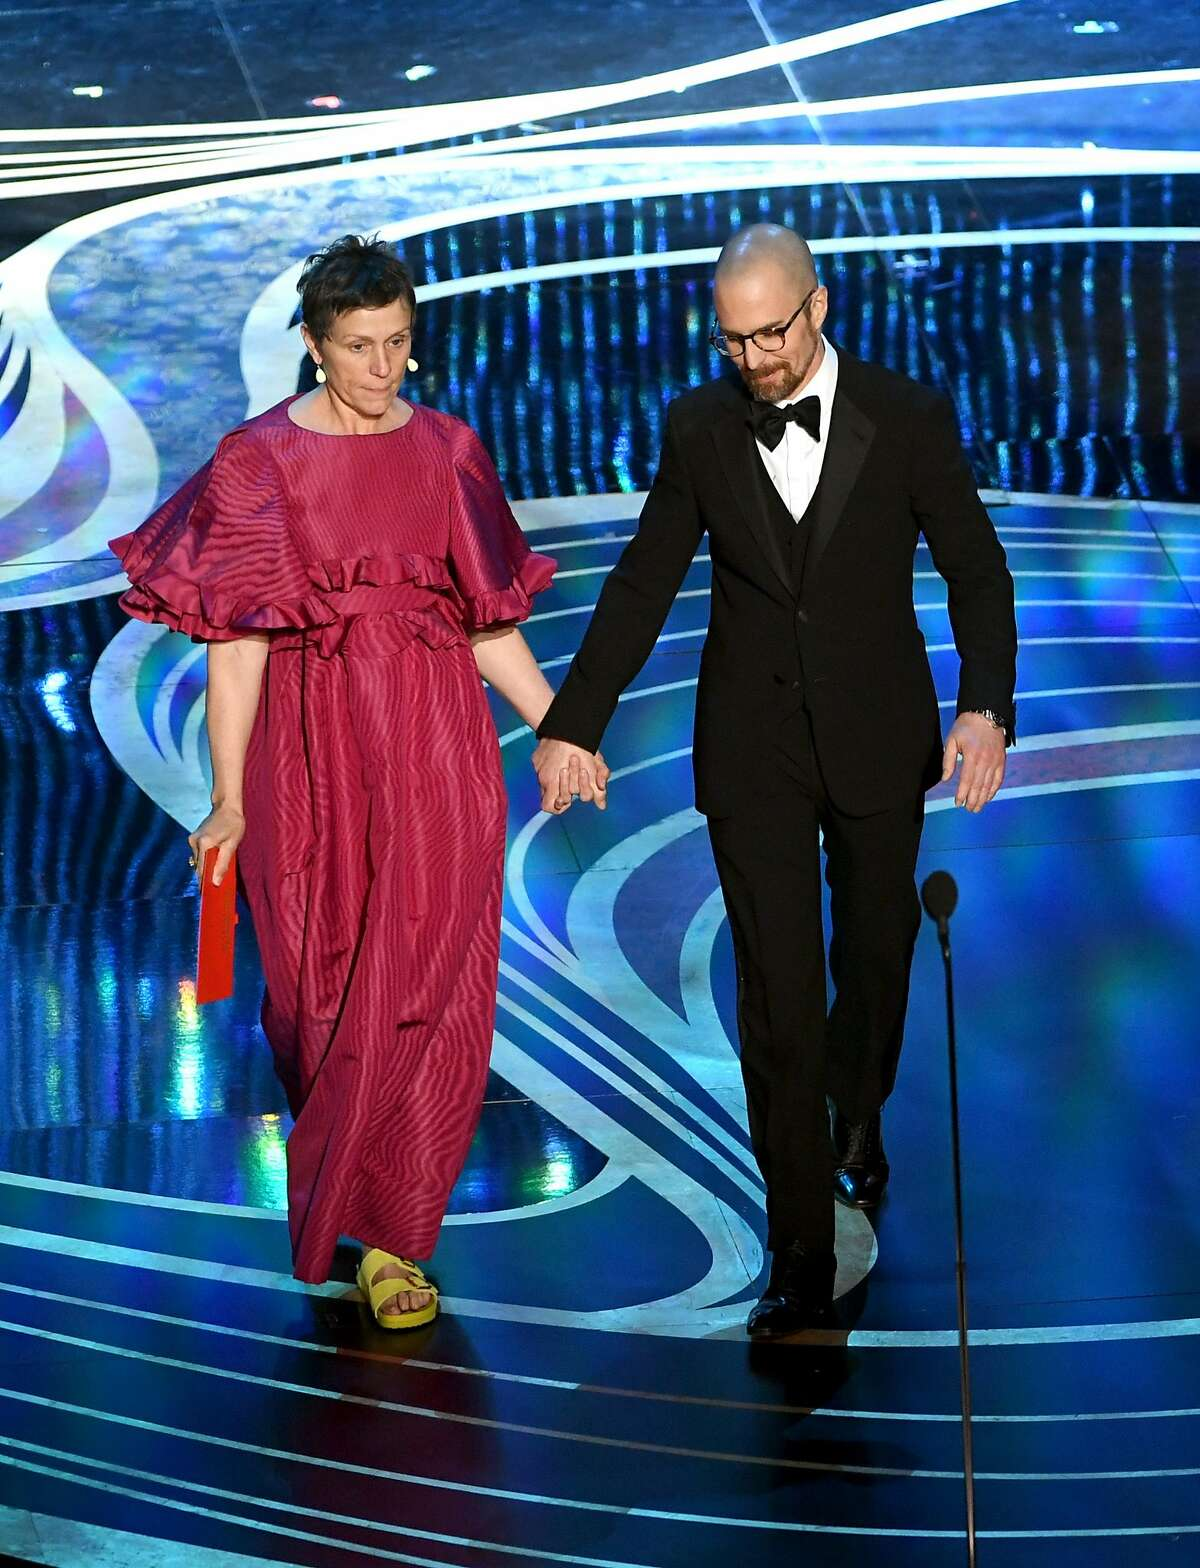 HOLLYWOOD, CALIFORNIA - FEBRUARY 24: (L-R) Frances McDormand and Sam Rockwell speak onstage during the 91st Annual Academy Awards at Dolby Theatre on February 24, 2019 in Hollywood, California. (Photo by Kevin Winter/Getty Images)